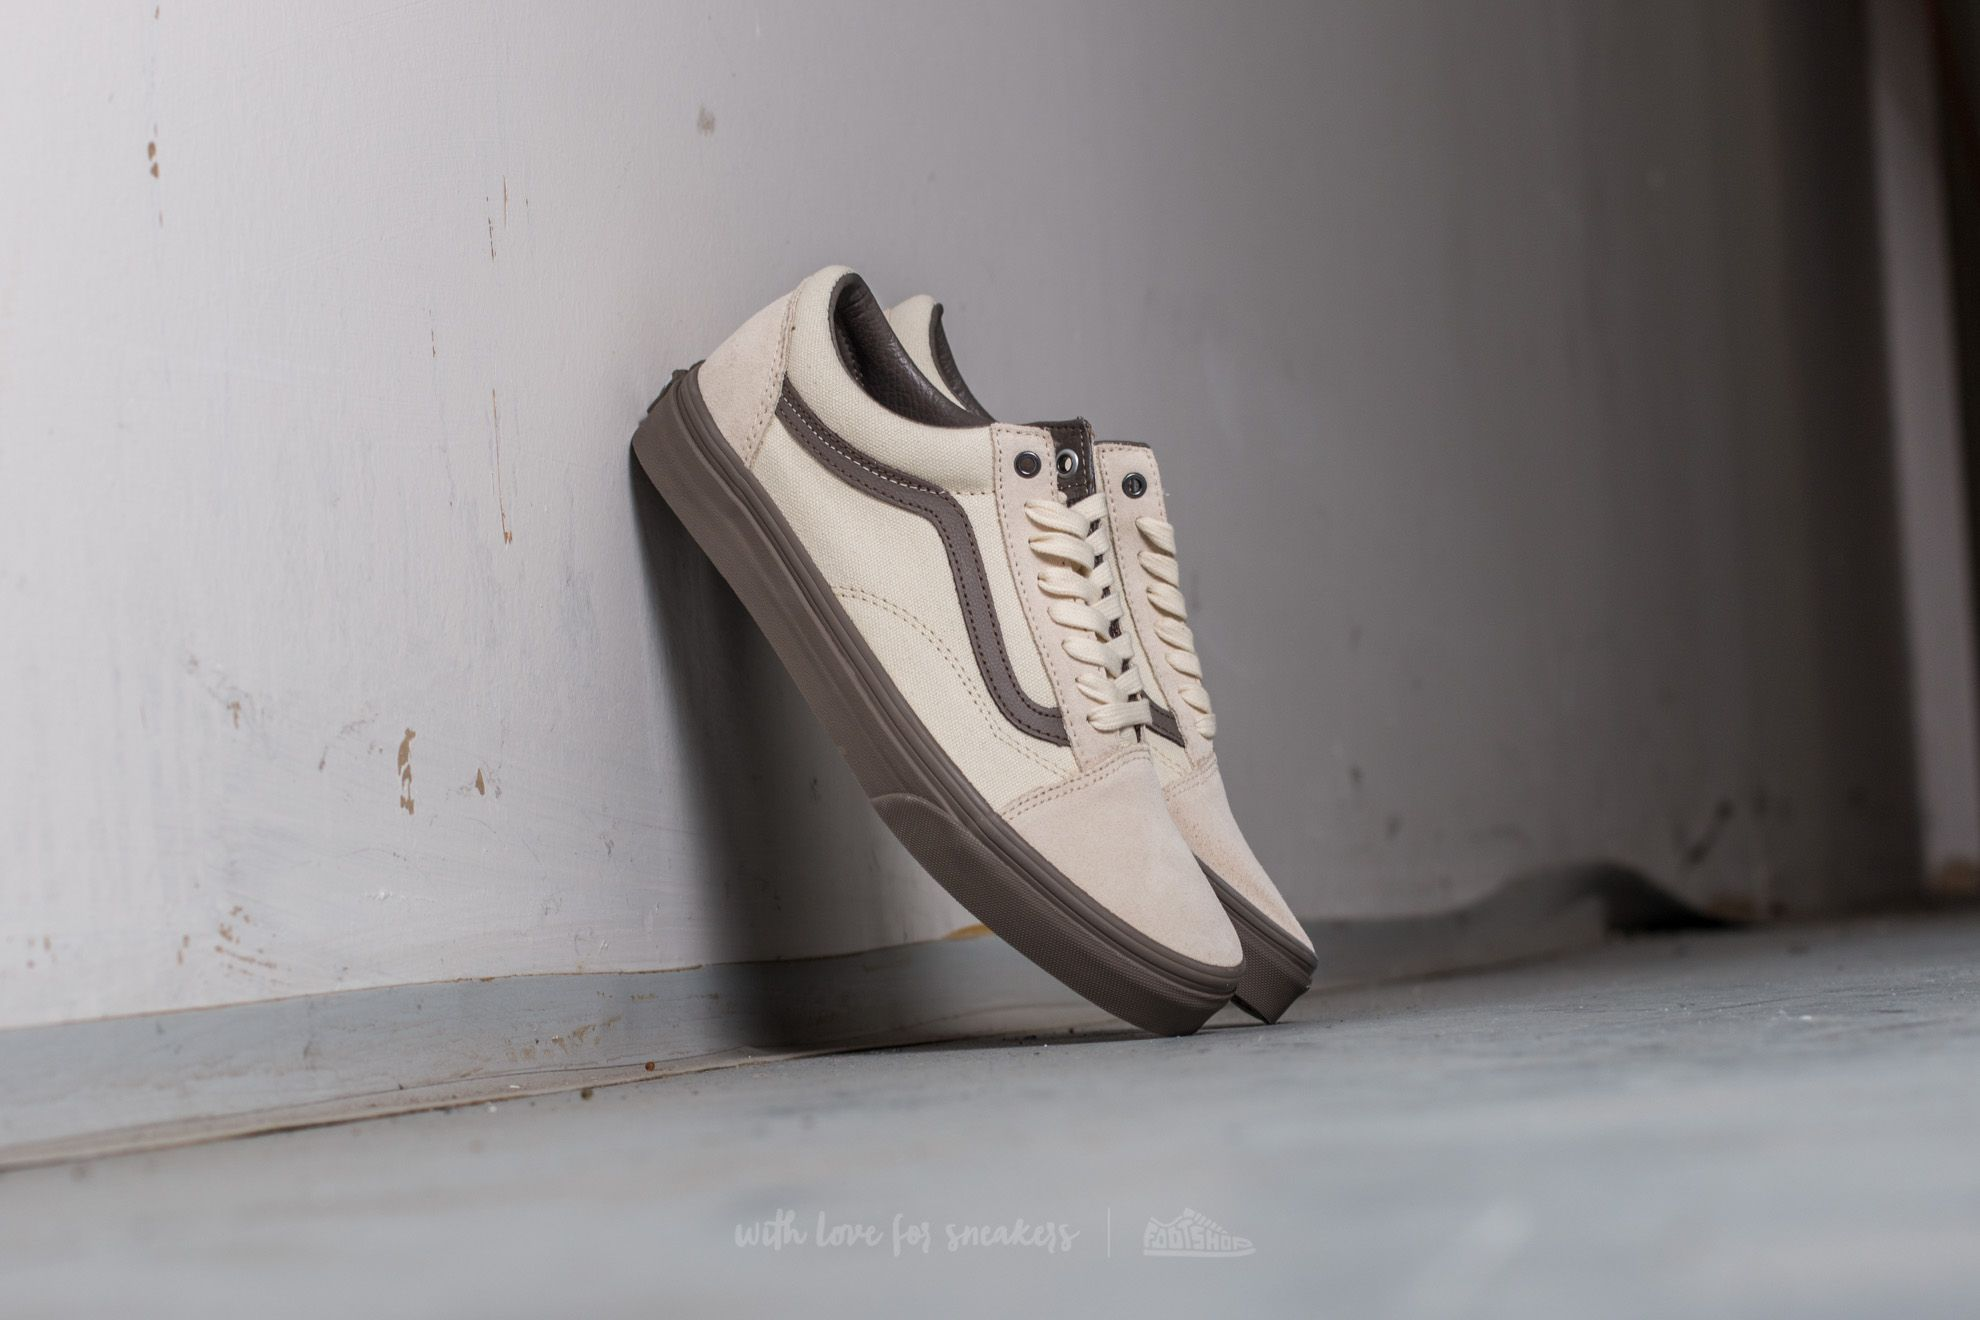 c63e0f9884bc90 Vans Old Skool (C D) Cream  Walnut